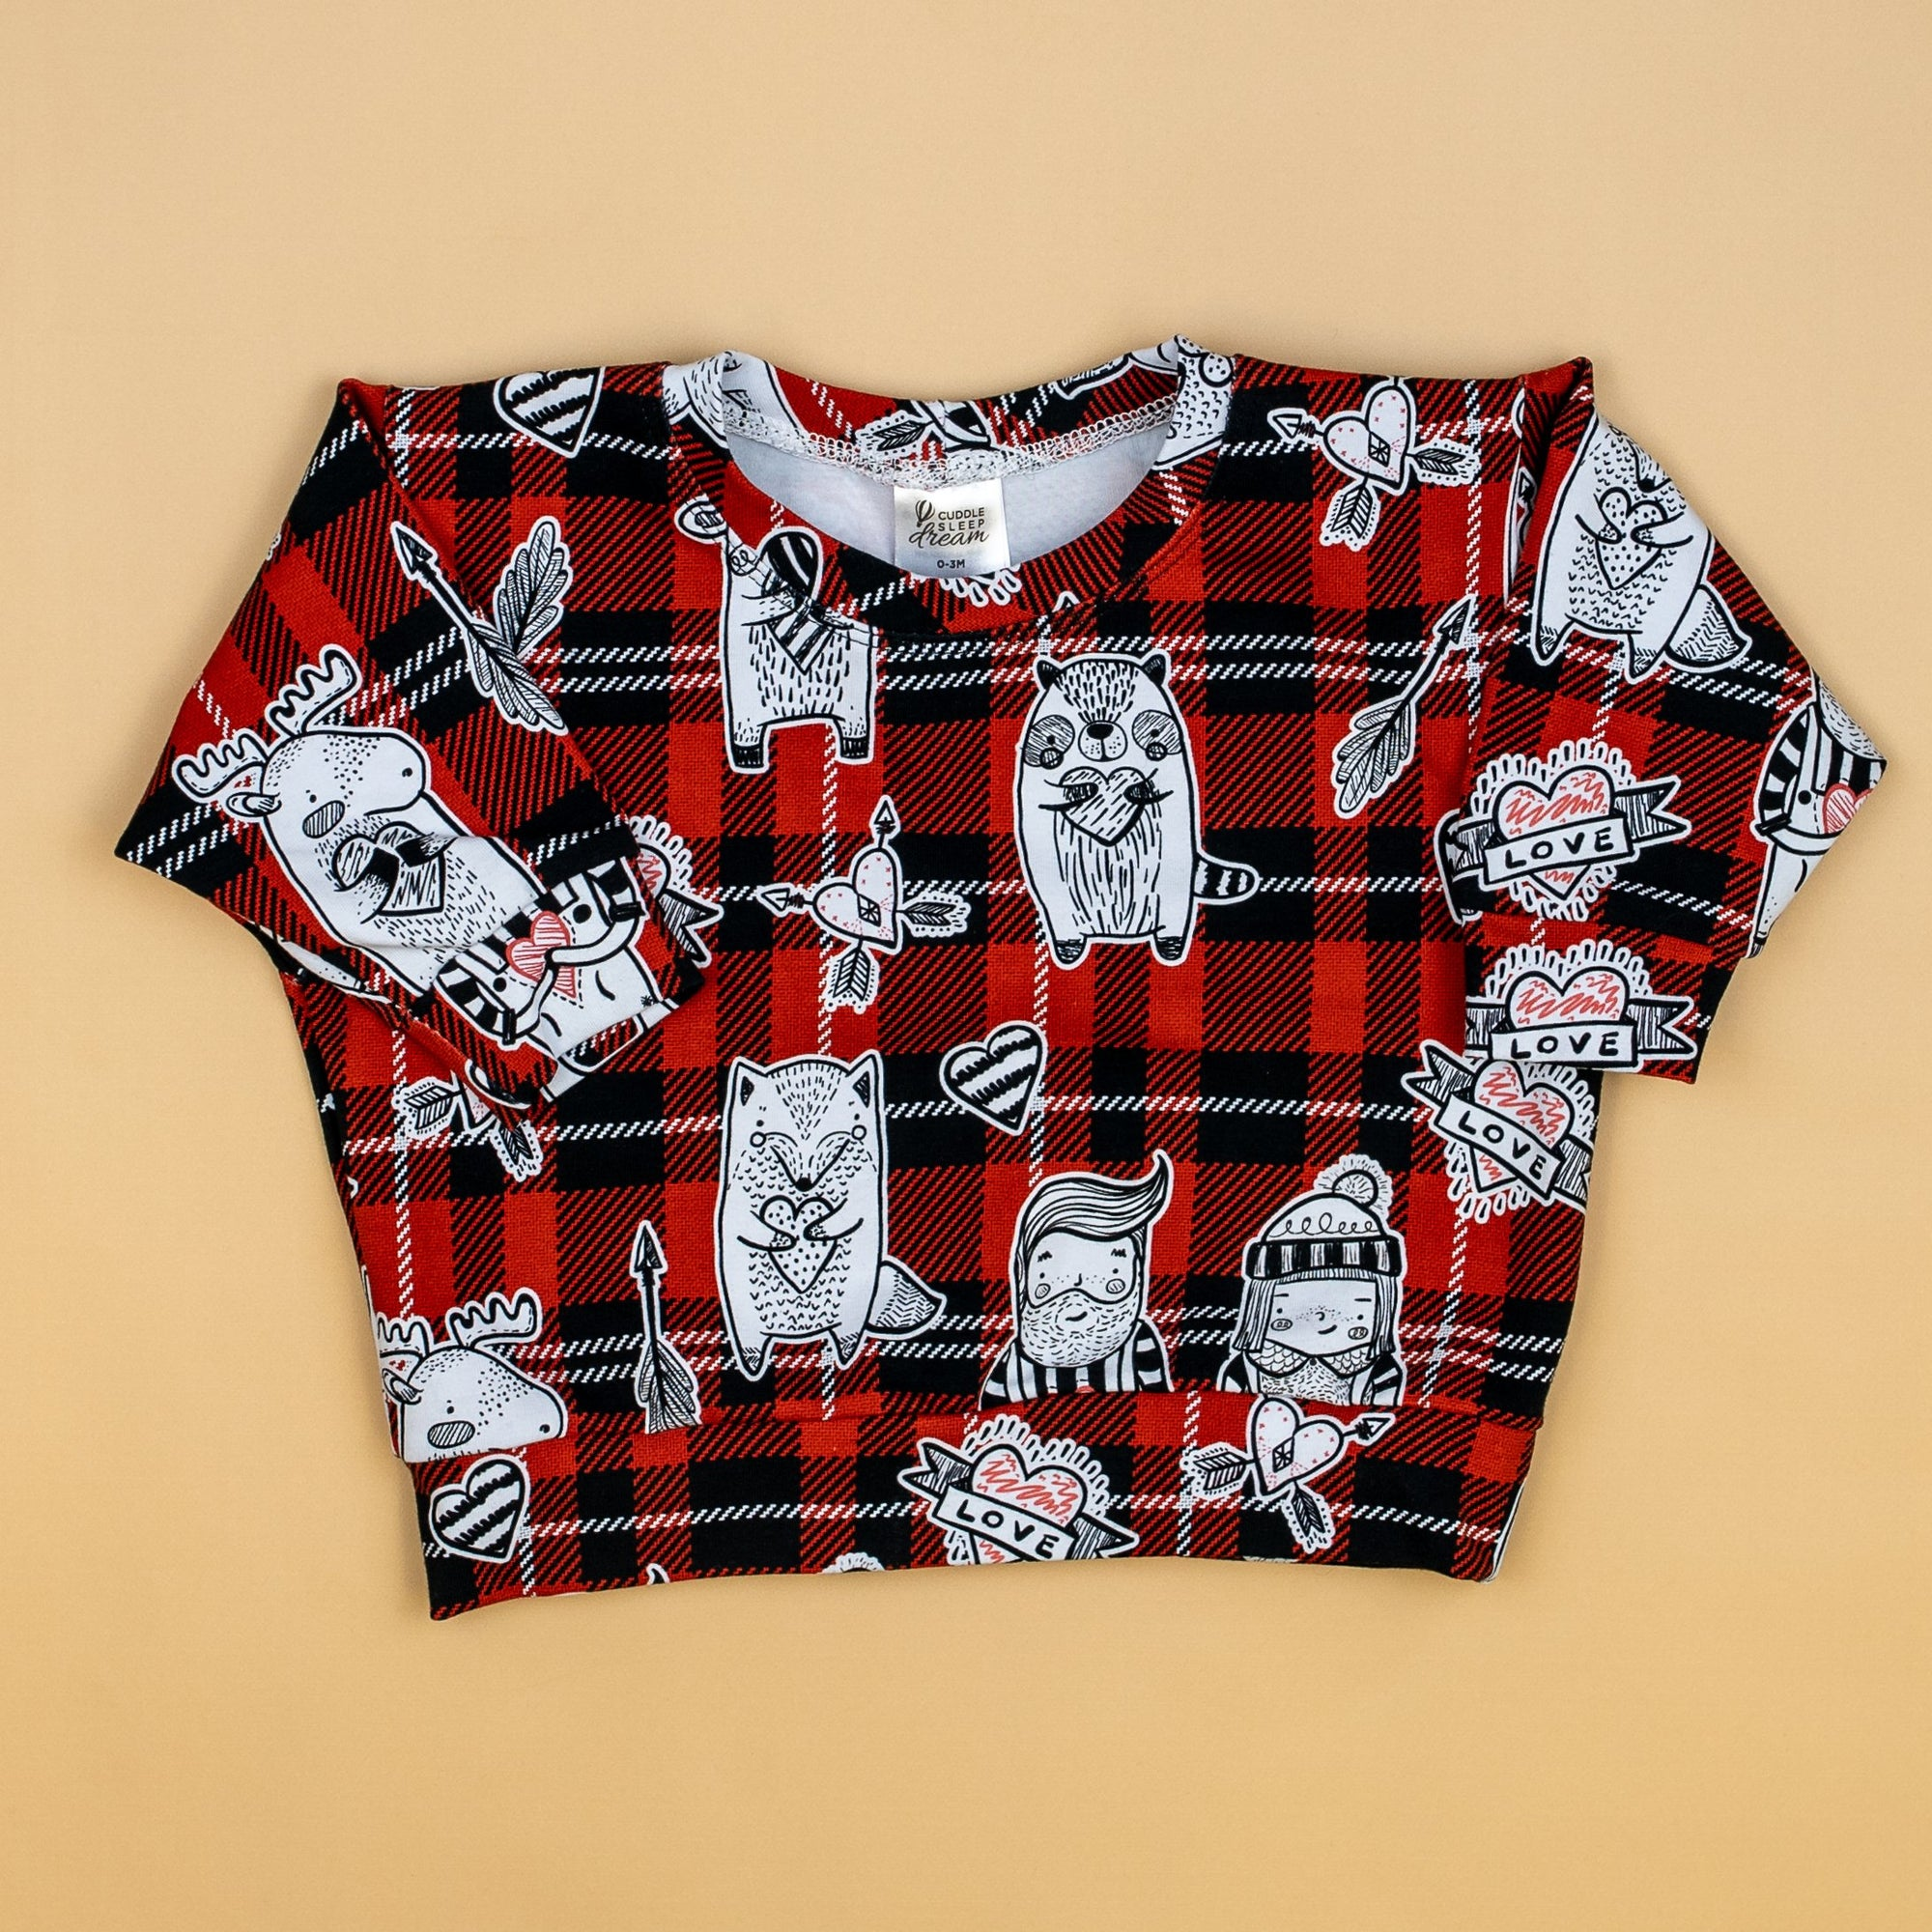 Cuddle Sleep Dream Sweater Valentine Wilderness Plaid Sweatshirt